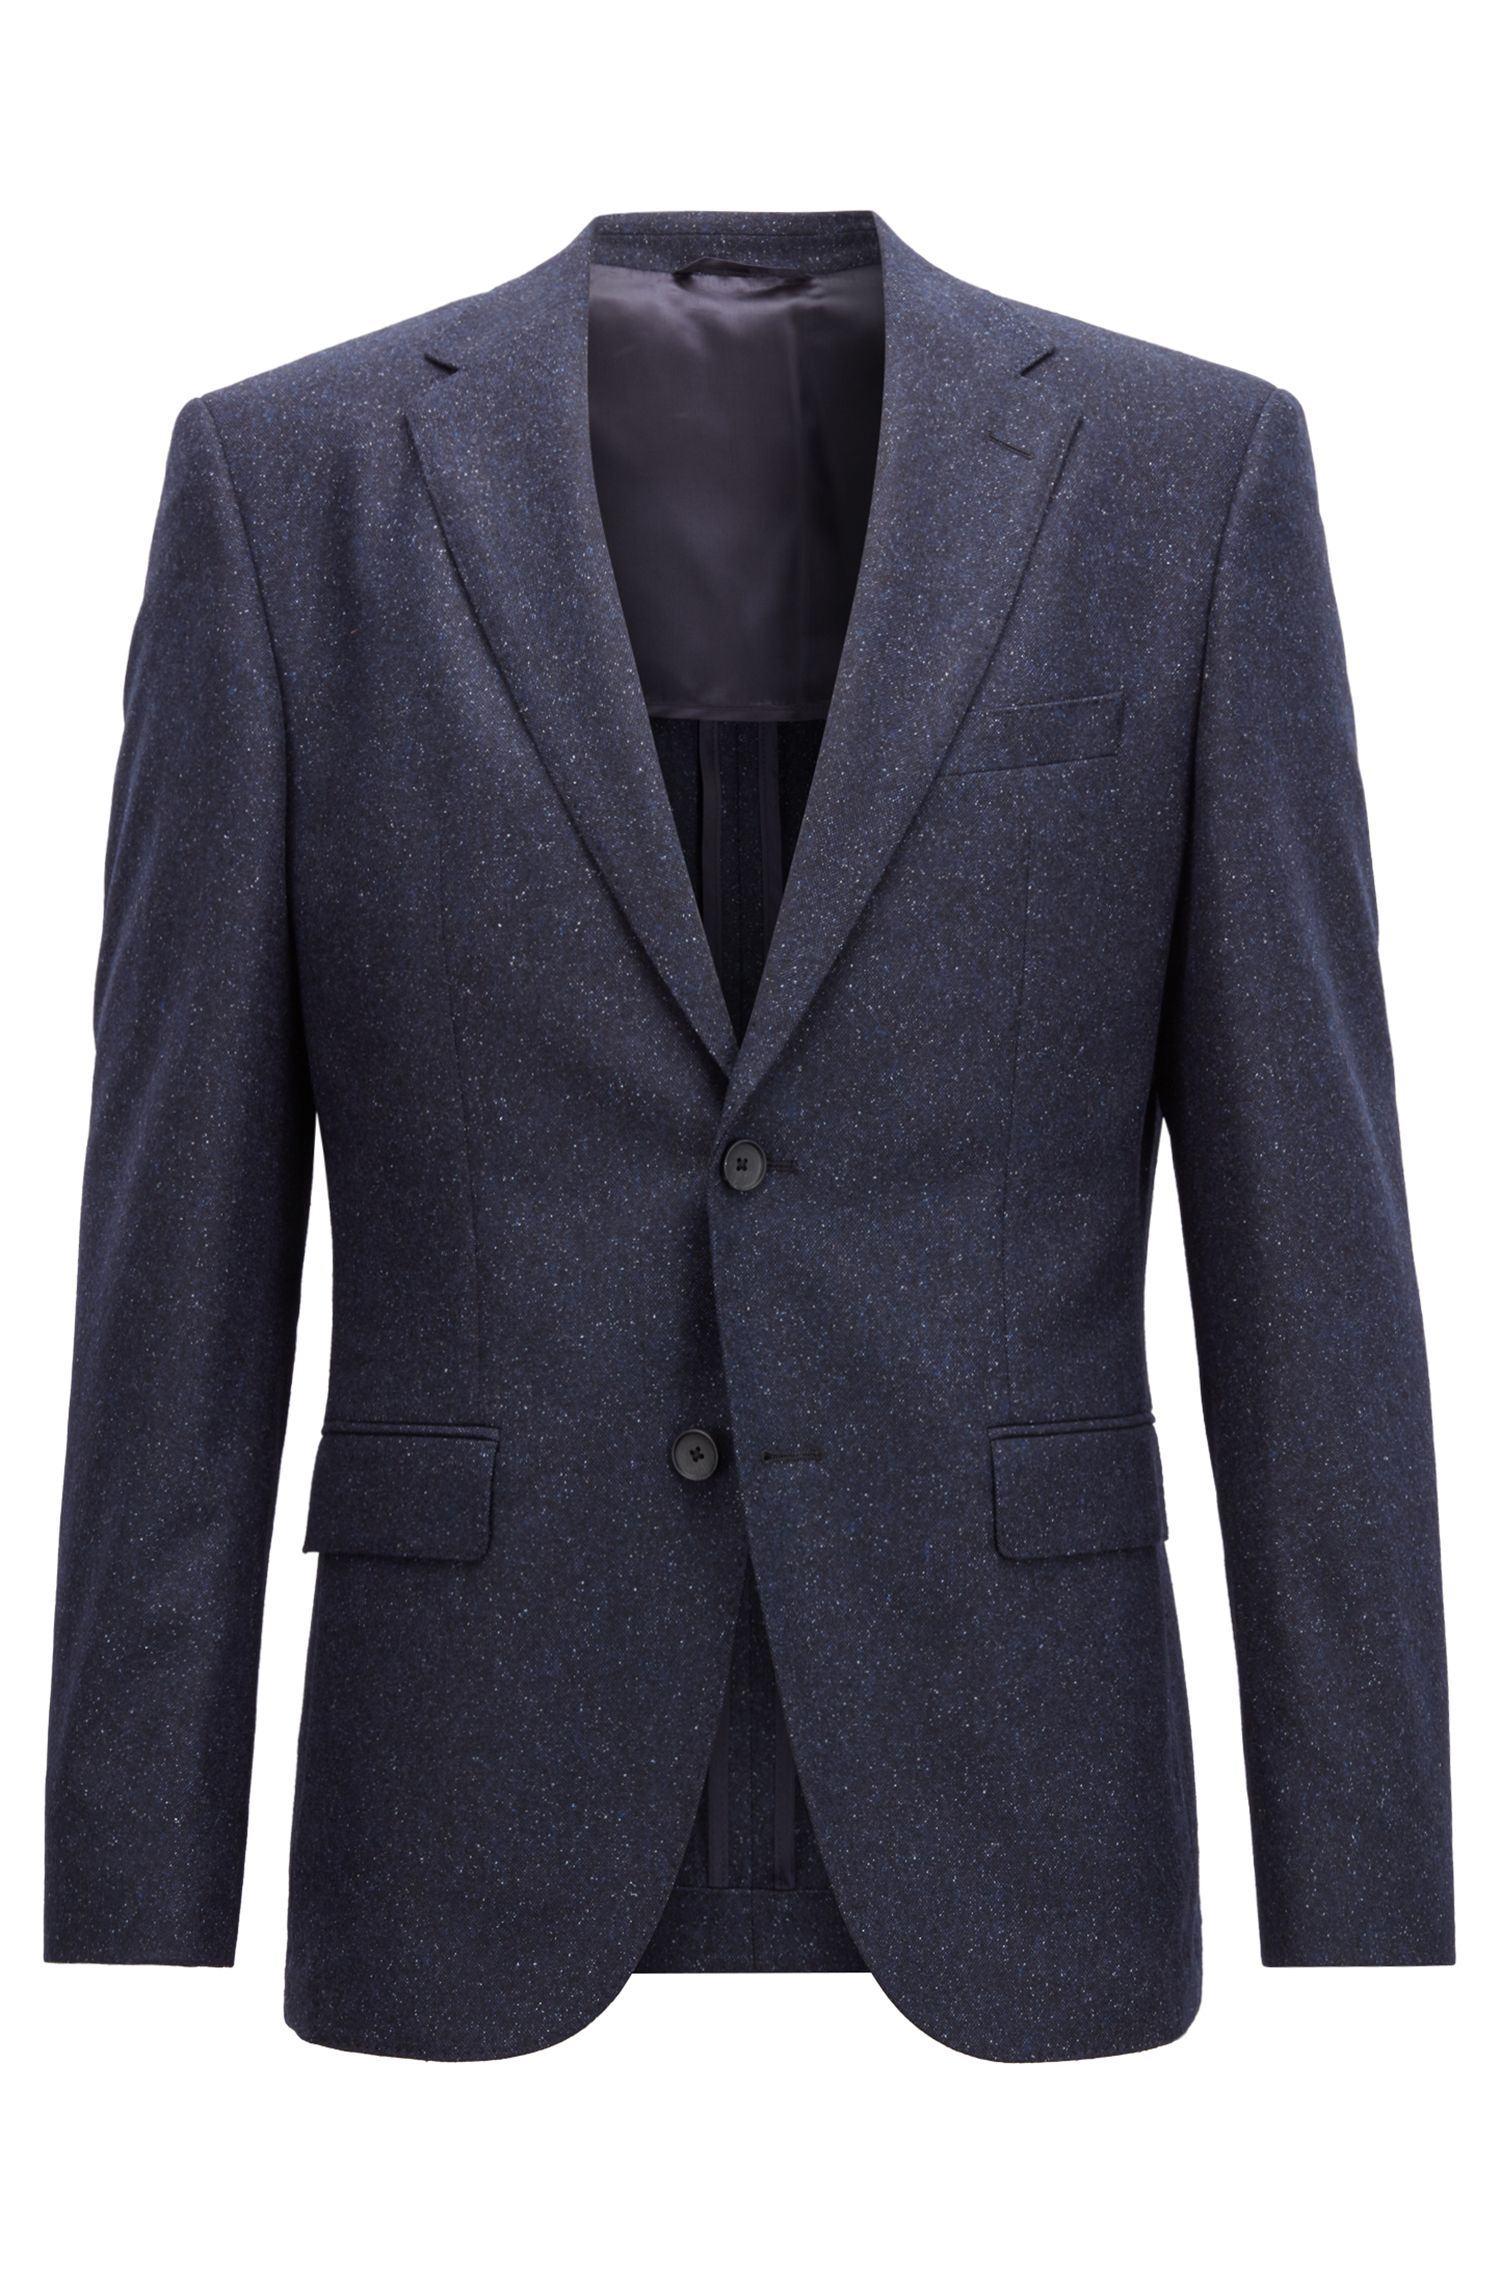 Blazer regular fit en tweed de mezcla de lana virgen, Azul oscuro